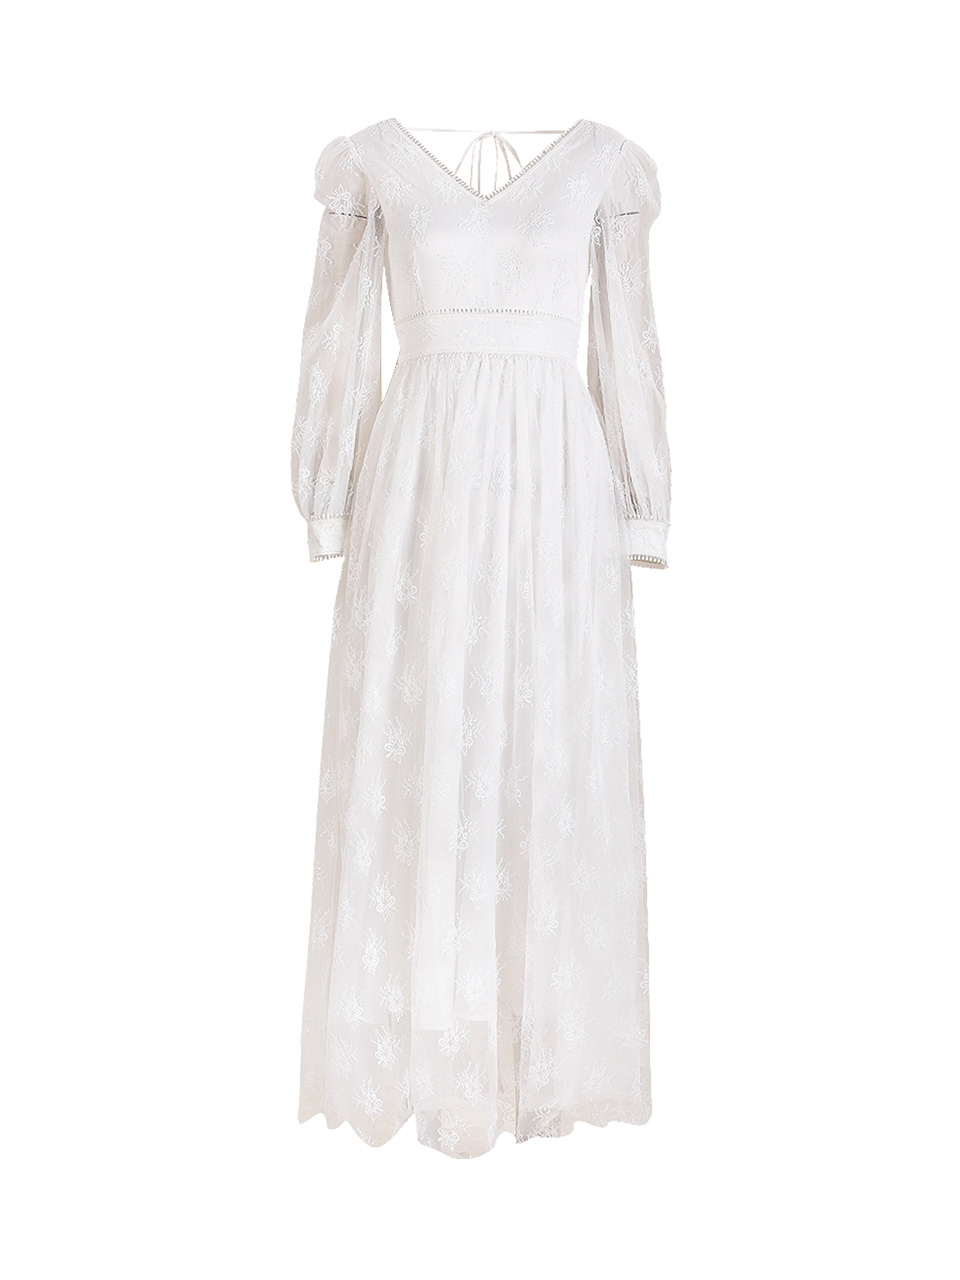 GUKACeremony Pearl Long Dress